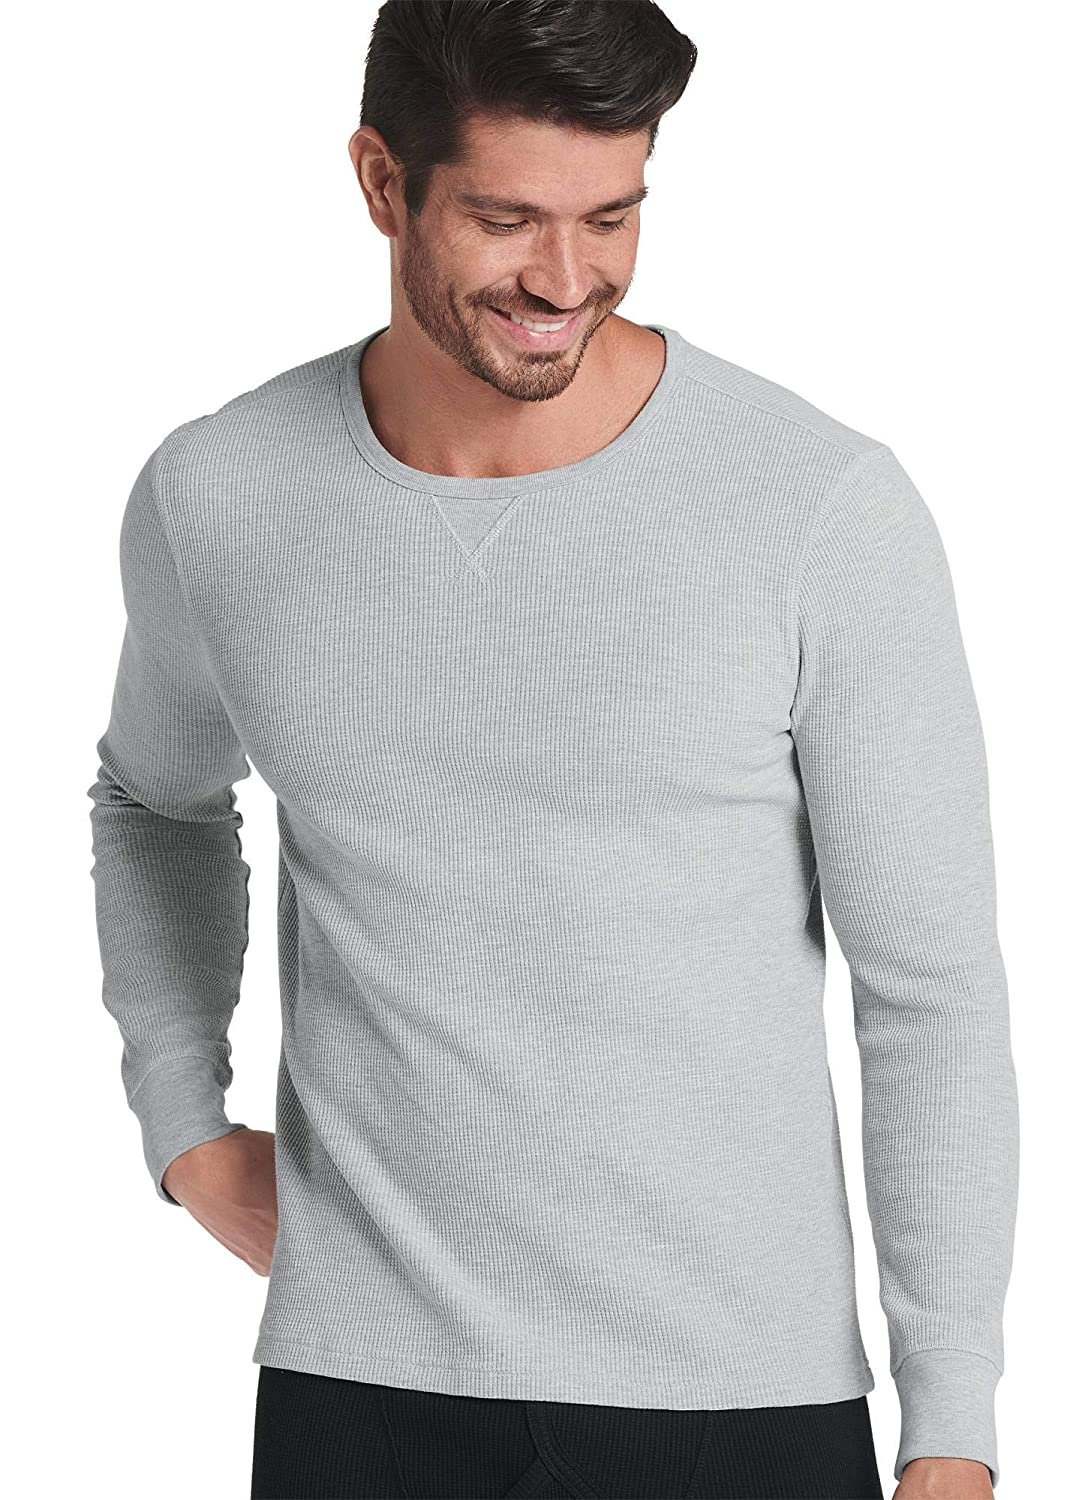 Jockey Men's T-Shirts Long Sleeve Waffle Crew